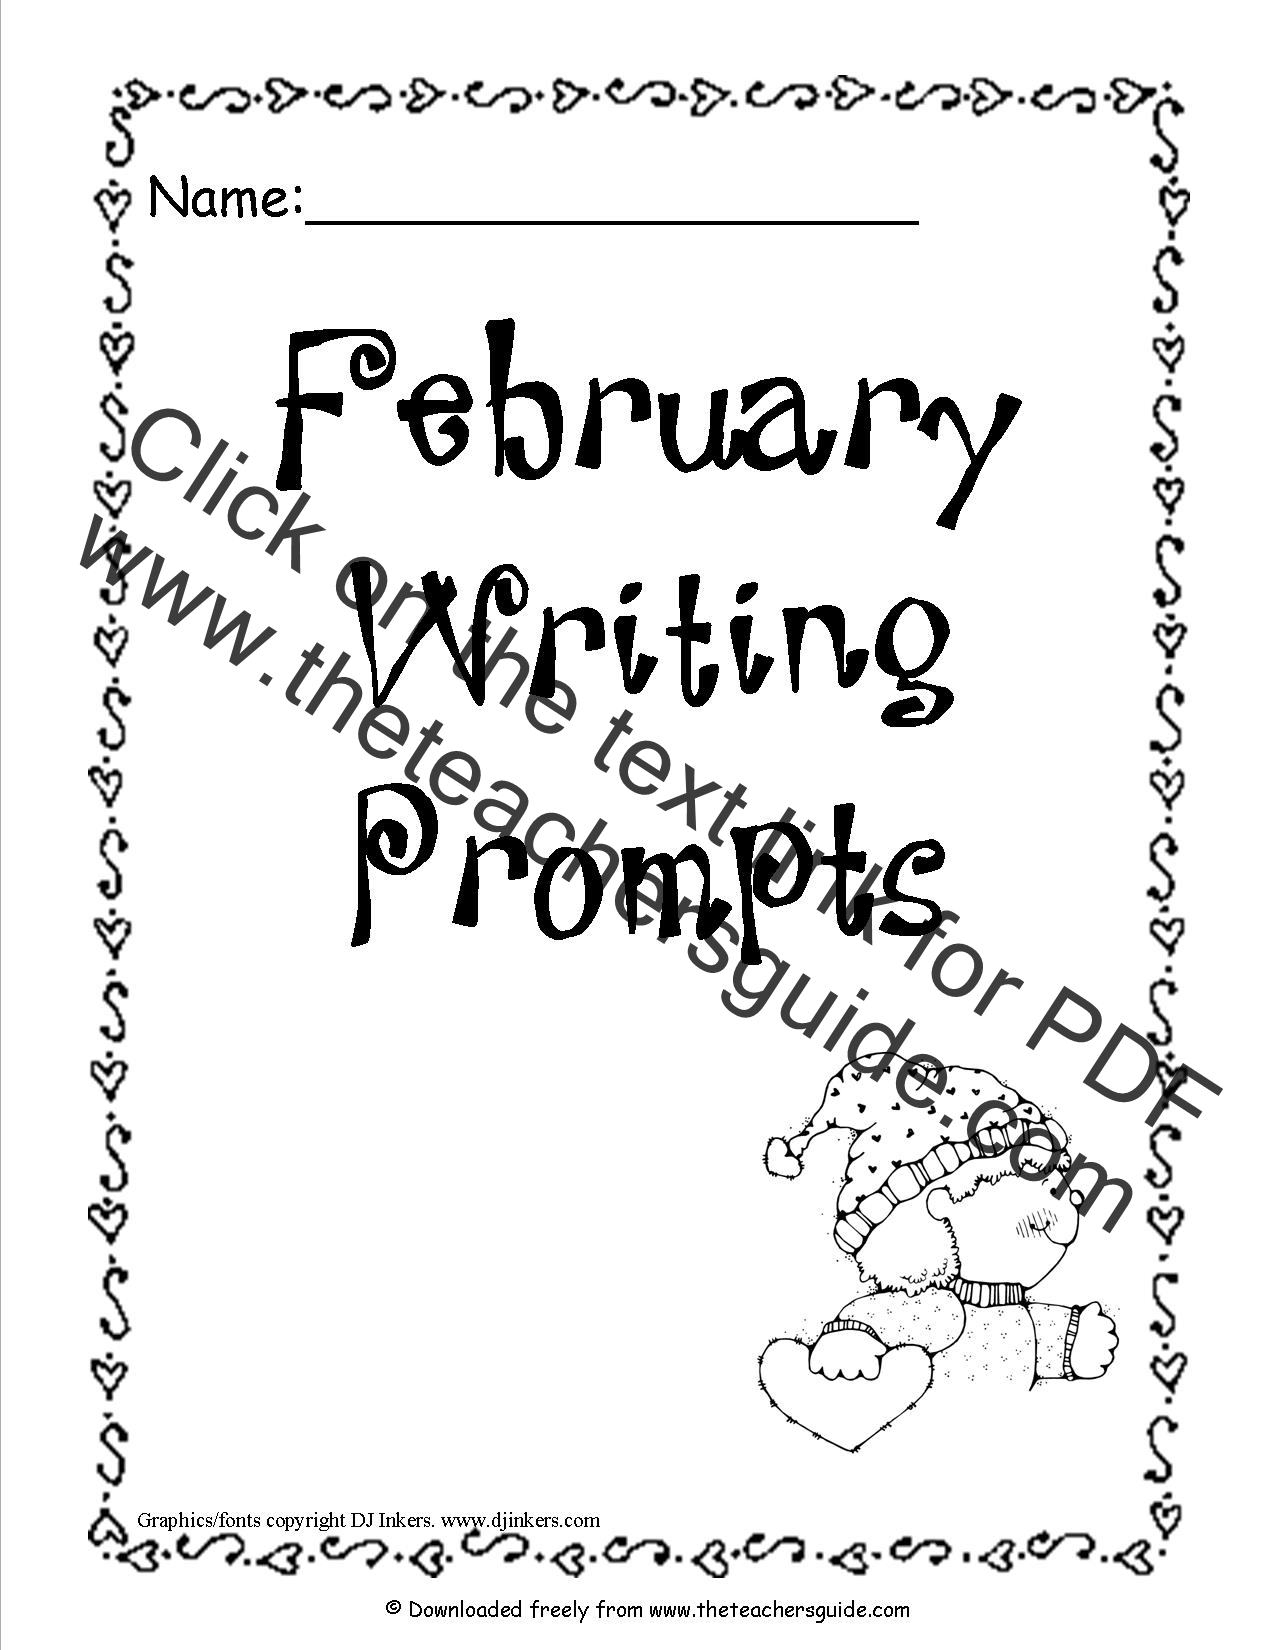 Valentines Day Color By Number Worksheets together with Infant Turky Handprint further Dbe C Fa C Fb L besides A Ae B C F D A B A Ten Frames Math Lessons together with Little Red Riding Hood Story Sequencing. on valentine worksheets for kindergarten